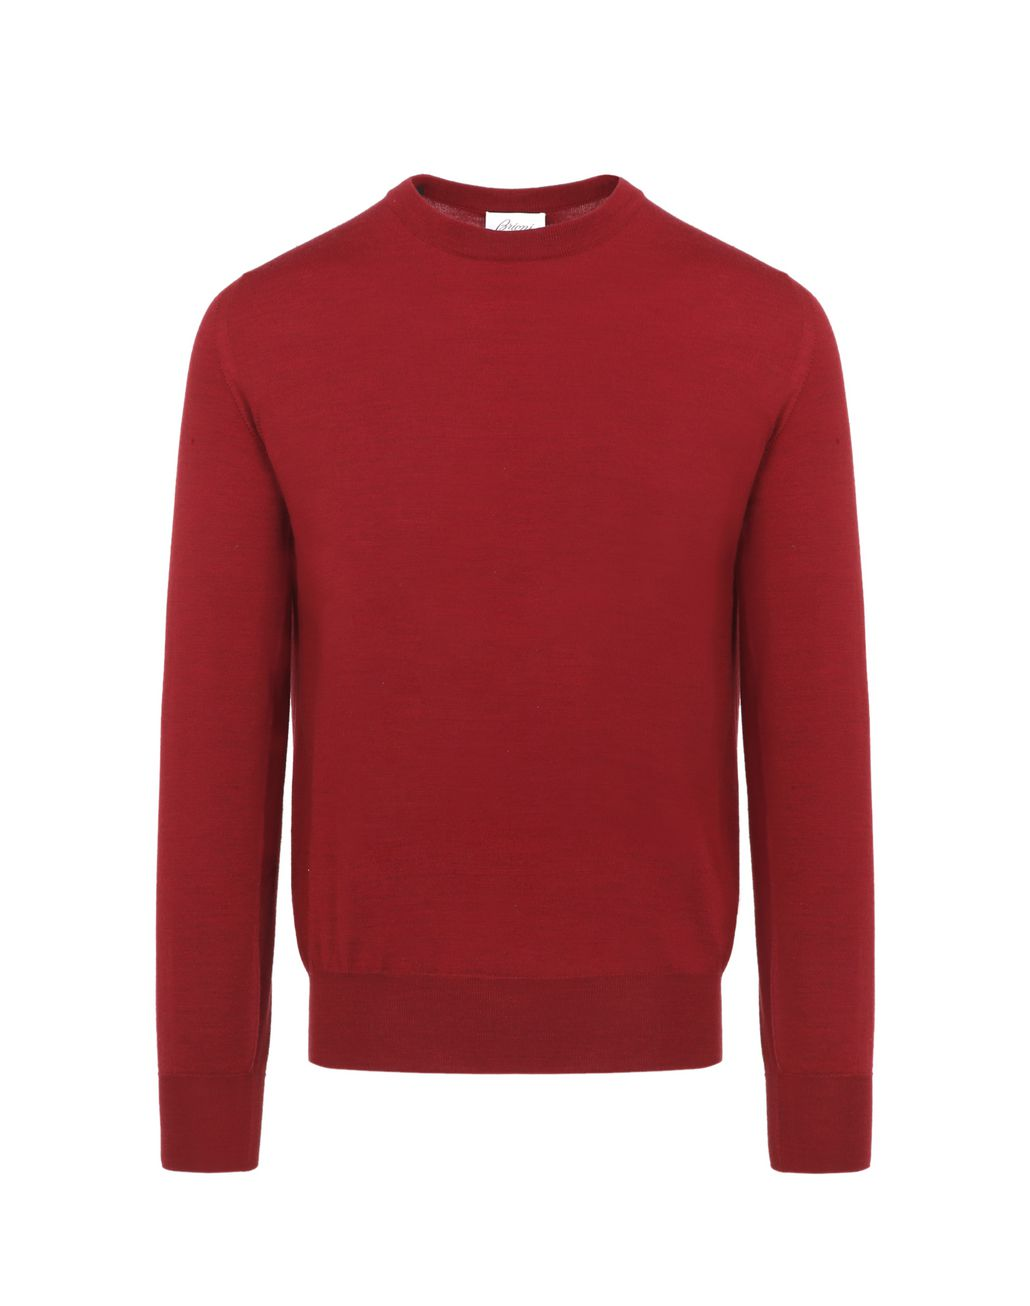 BRIONI Red Crewneck Sweater Knitwear Man f